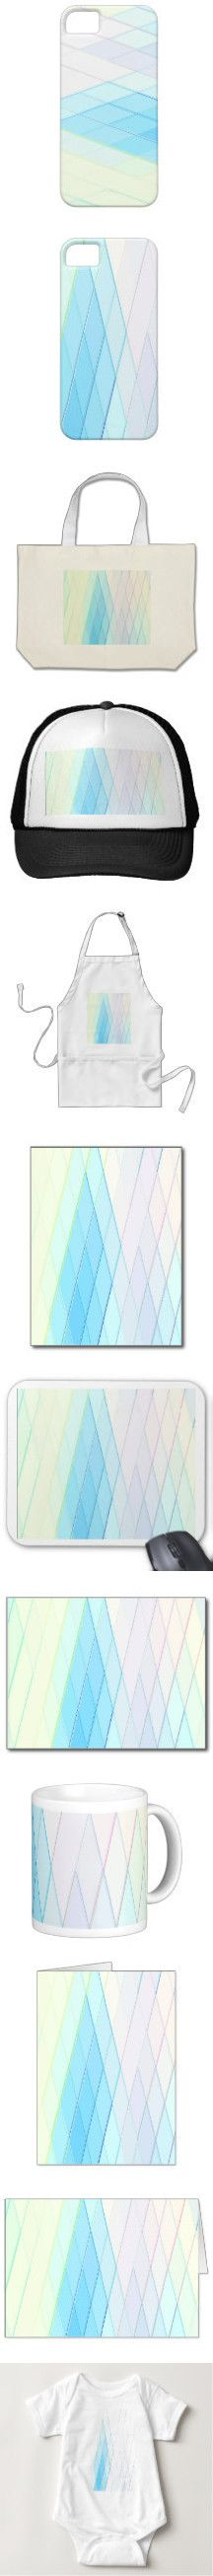 RobertSLeeArt*: Re-Created Vertices by Robert S. Lee by robertsleeart #art #graphic #design #iphone #ipod #ipad, #samsung #galaxy #s4 #s5 #s6 #case #cover #tech #geek #gadget #skin #colors #mug #bag #pillow #stationery, #apple #mac #laptop #sleeve #pullover #sweat #shirt #tank #top #hoody #kids #children #boys #girls #men #women #ladies #light #home #office #style #fashion #accessory #for #her #him #gift #want #need #print #canvas #framed, #Robert #S. #Lee